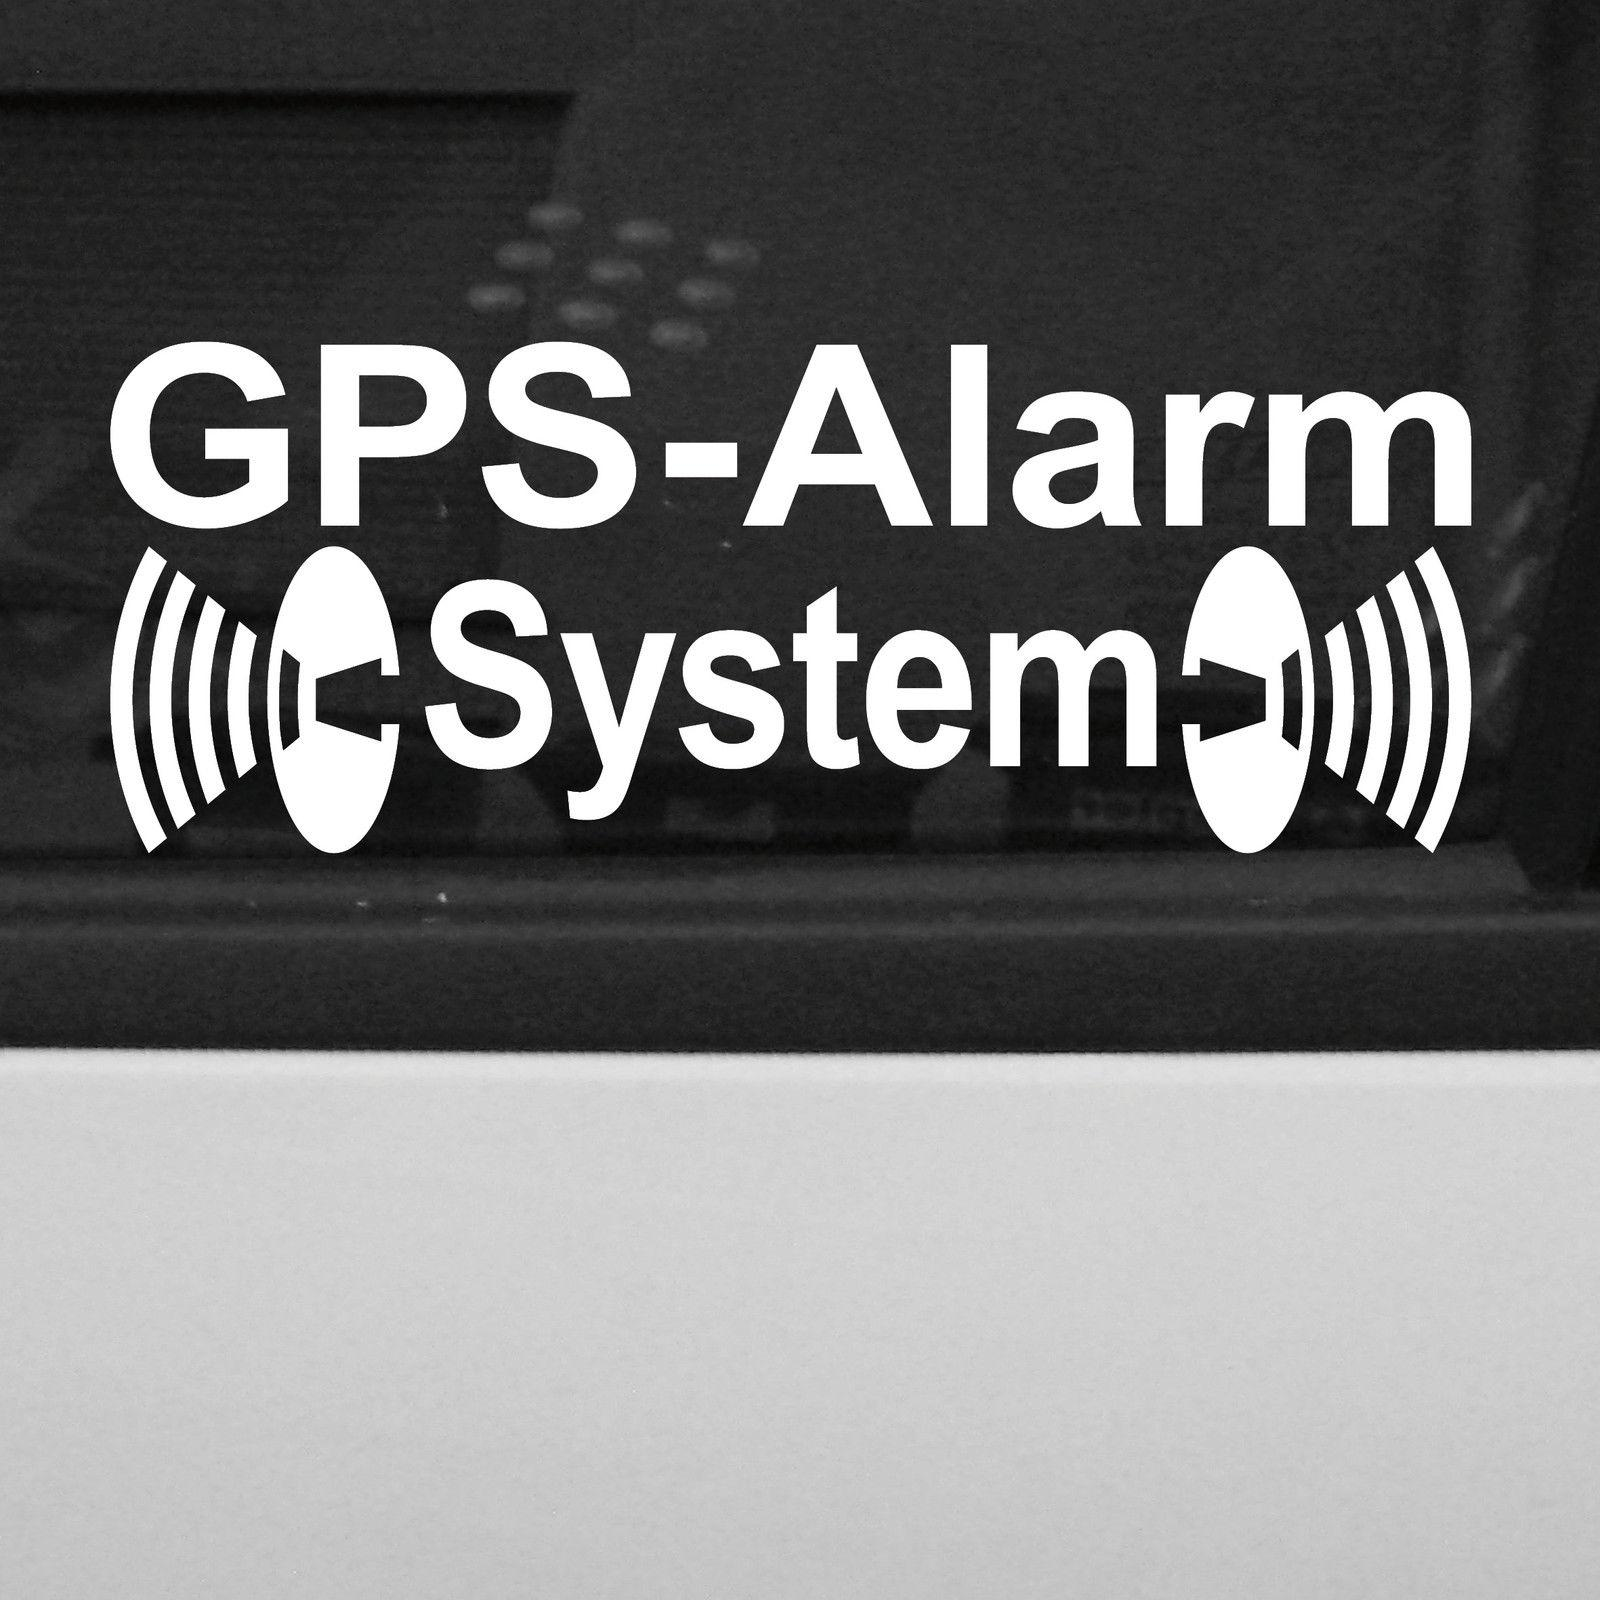 5 st ck gps alarm system wei gespiegelt aufkleber tattoo. Black Bedroom Furniture Sets. Home Design Ideas